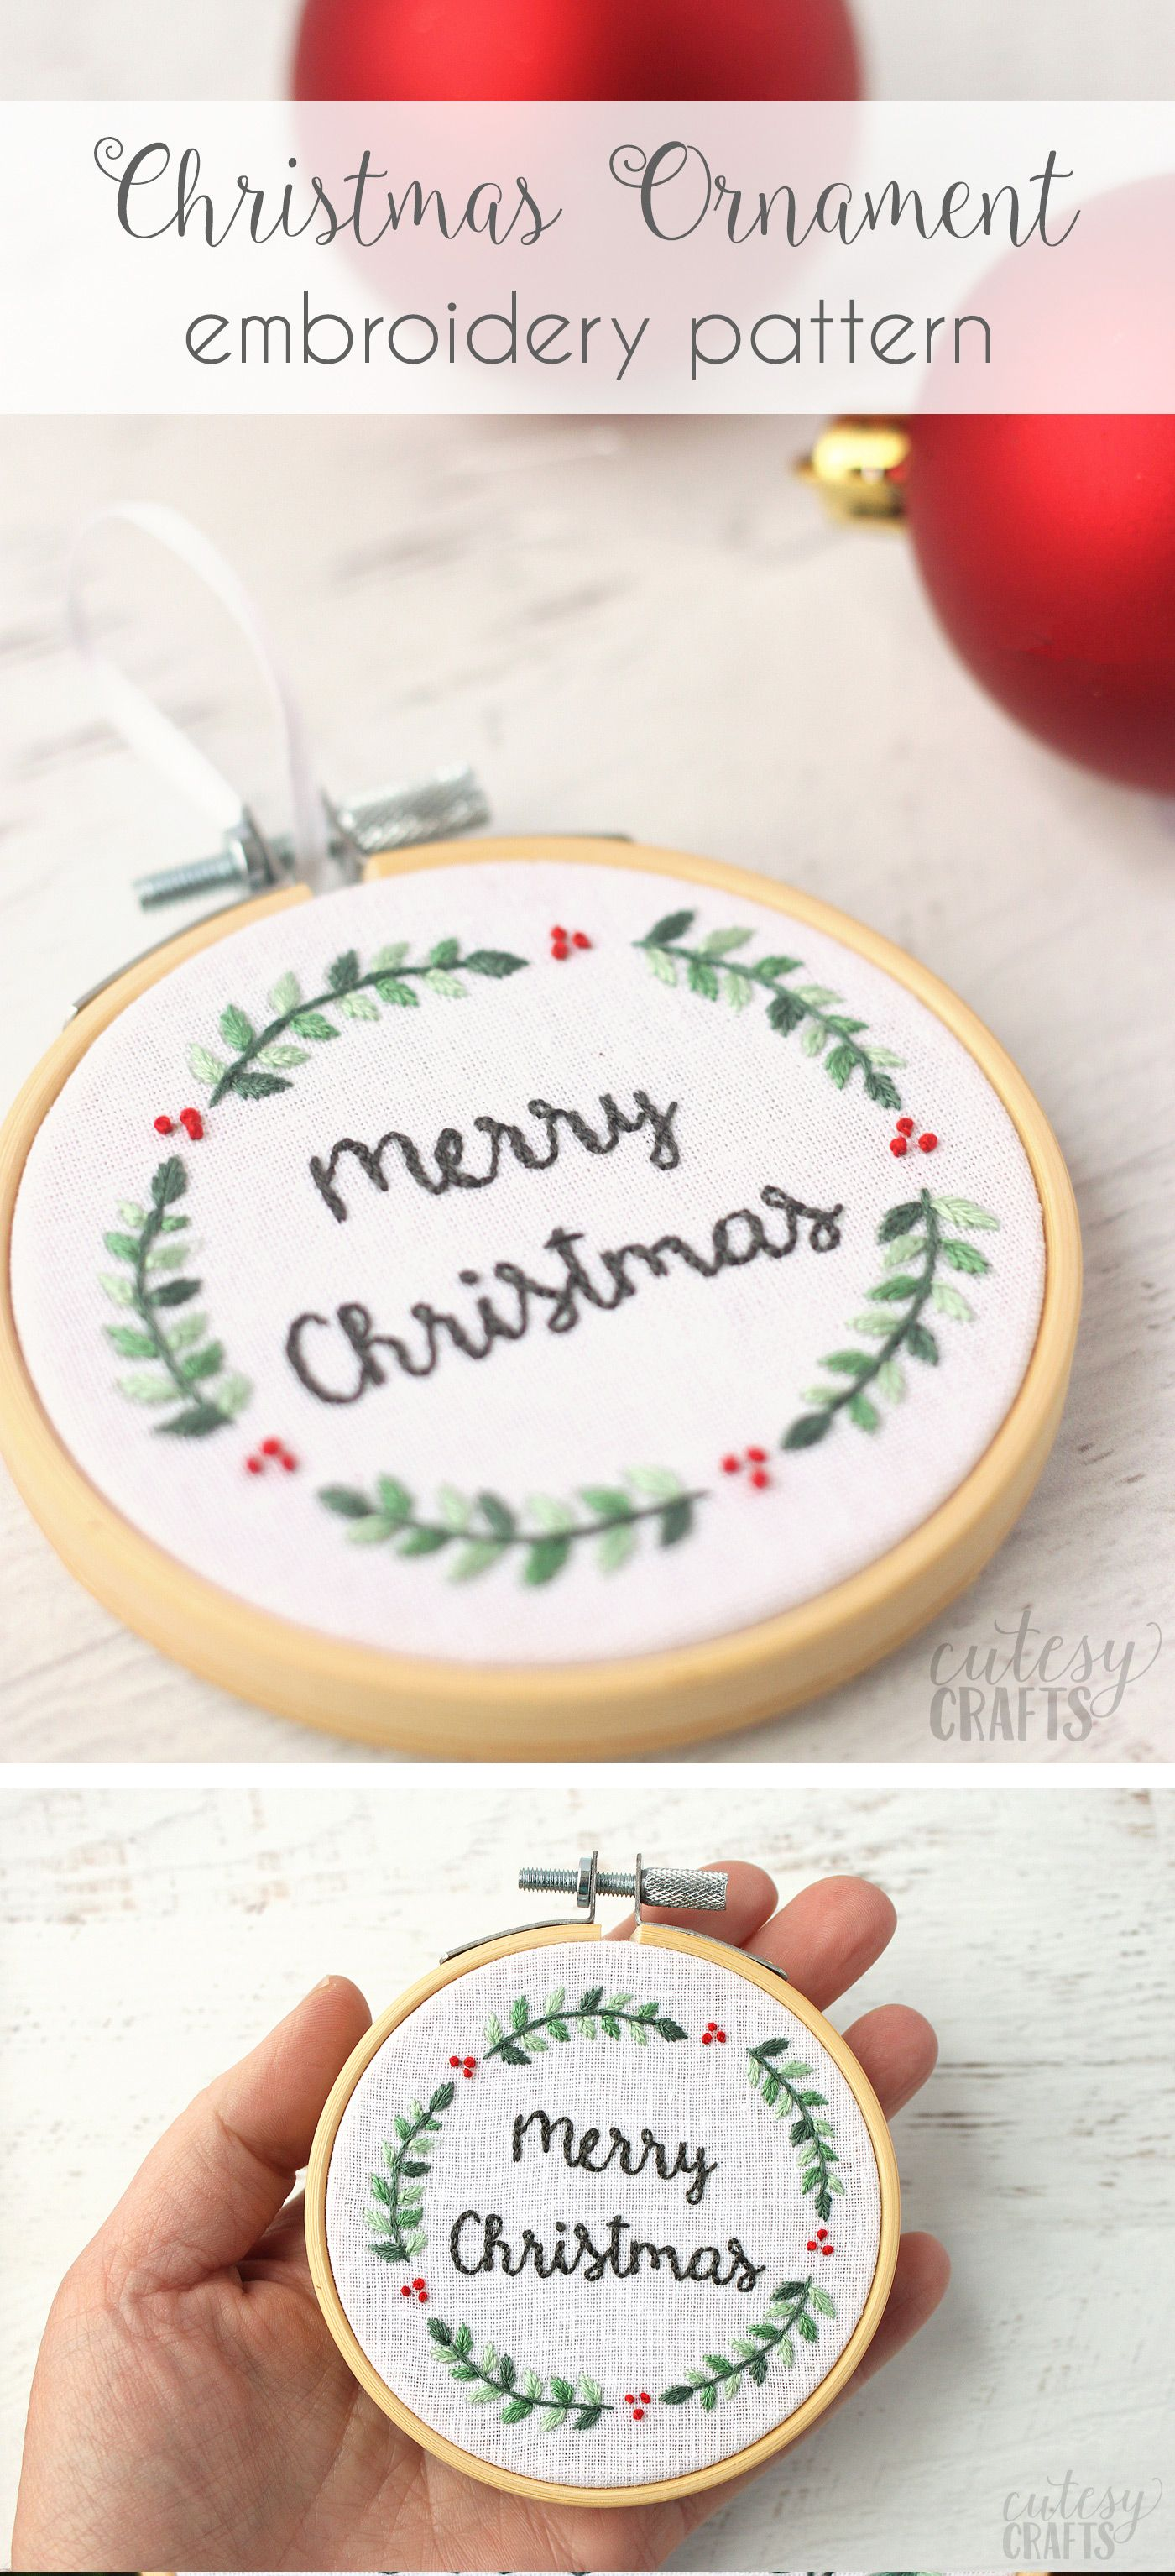 Christmas Embroidery Patterns Free.Merry Christmas Ornament Tutorial Free Christmas